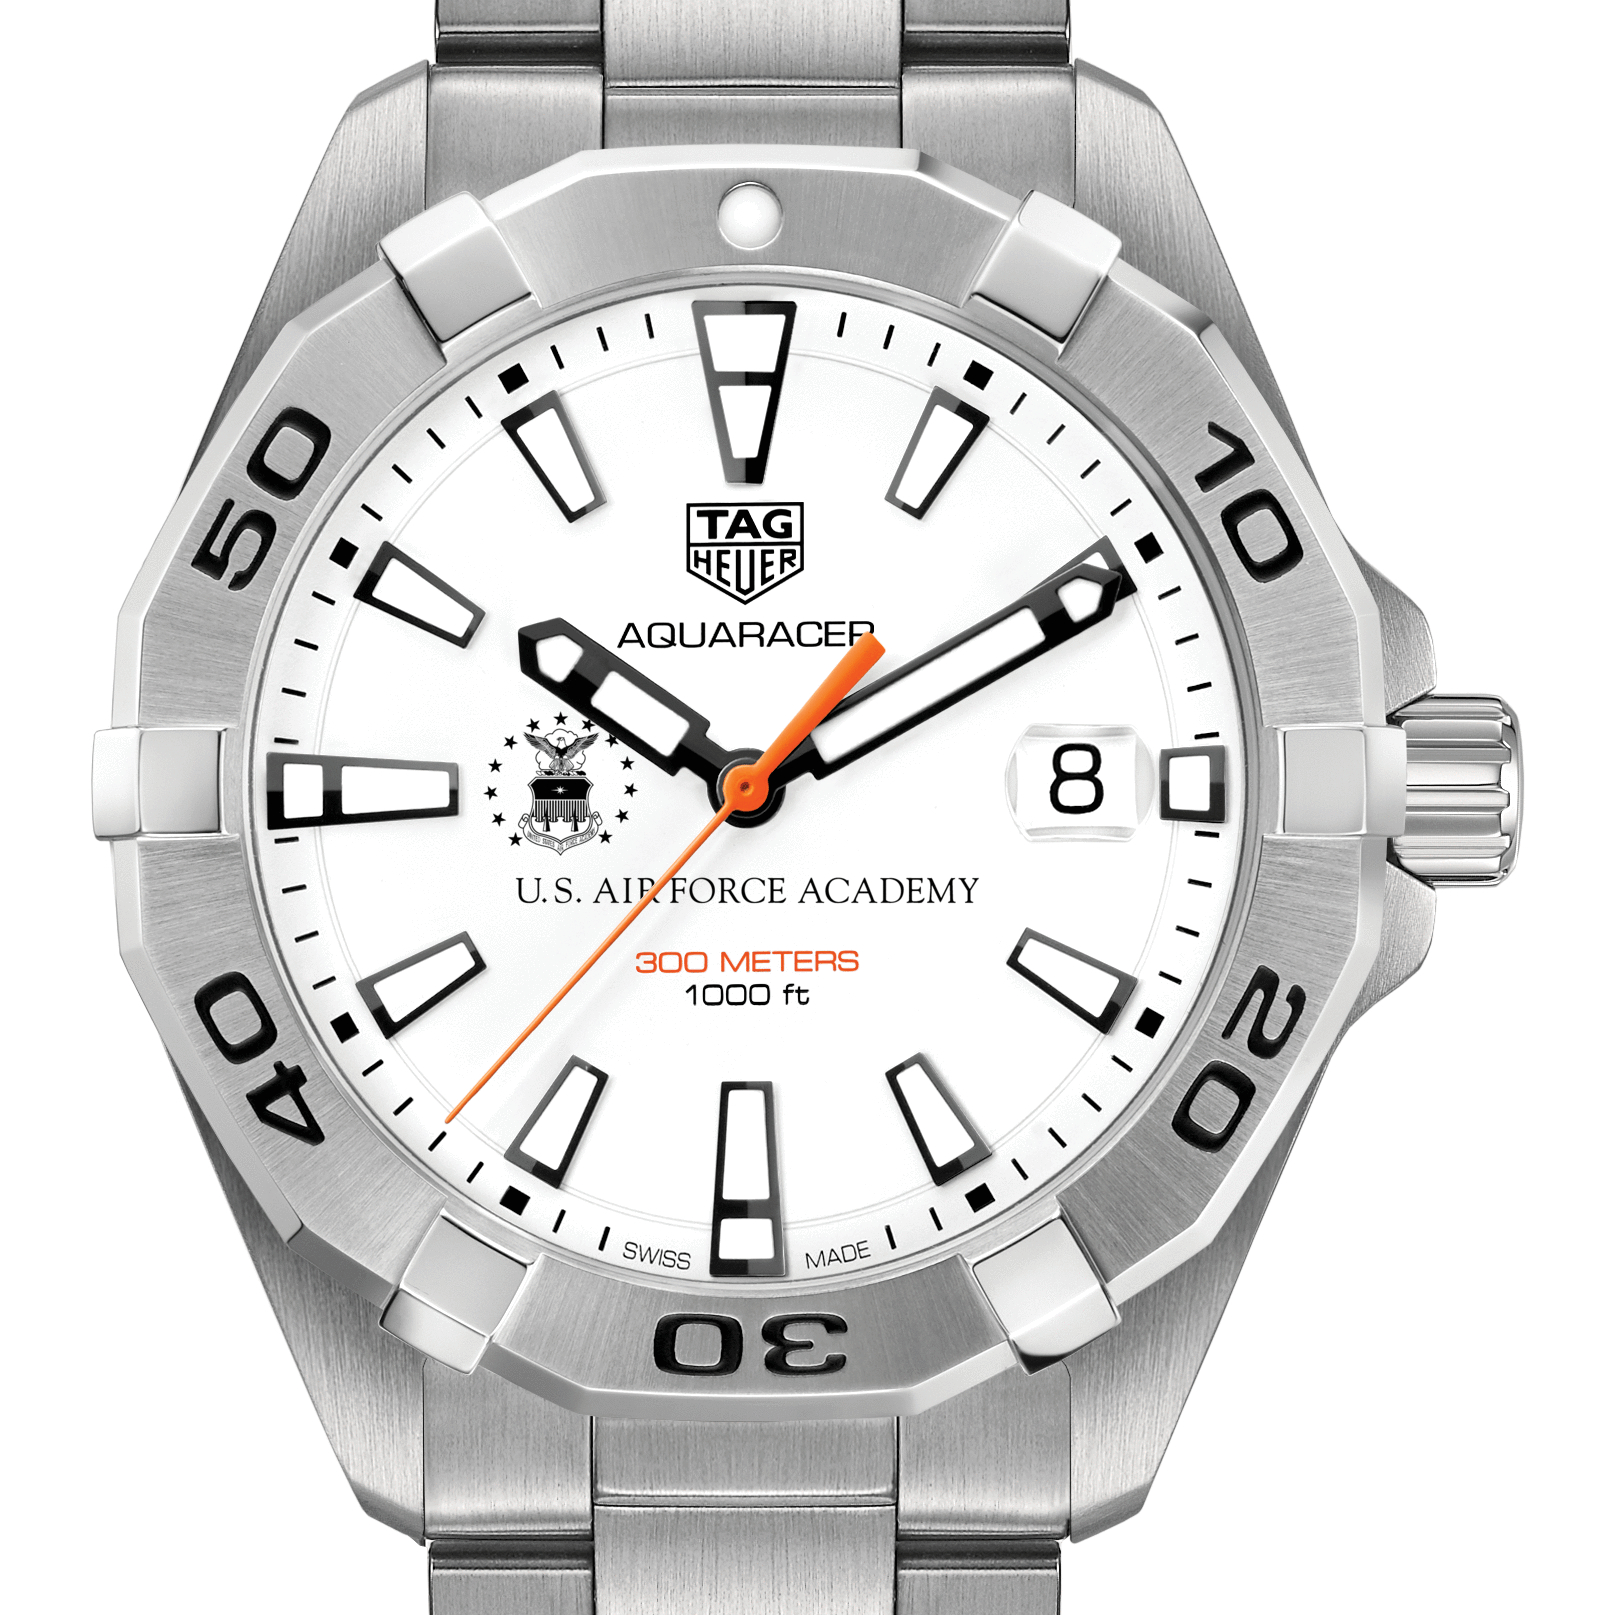 Air Force Academy Men's TAG Heuer Steel Aquaracer